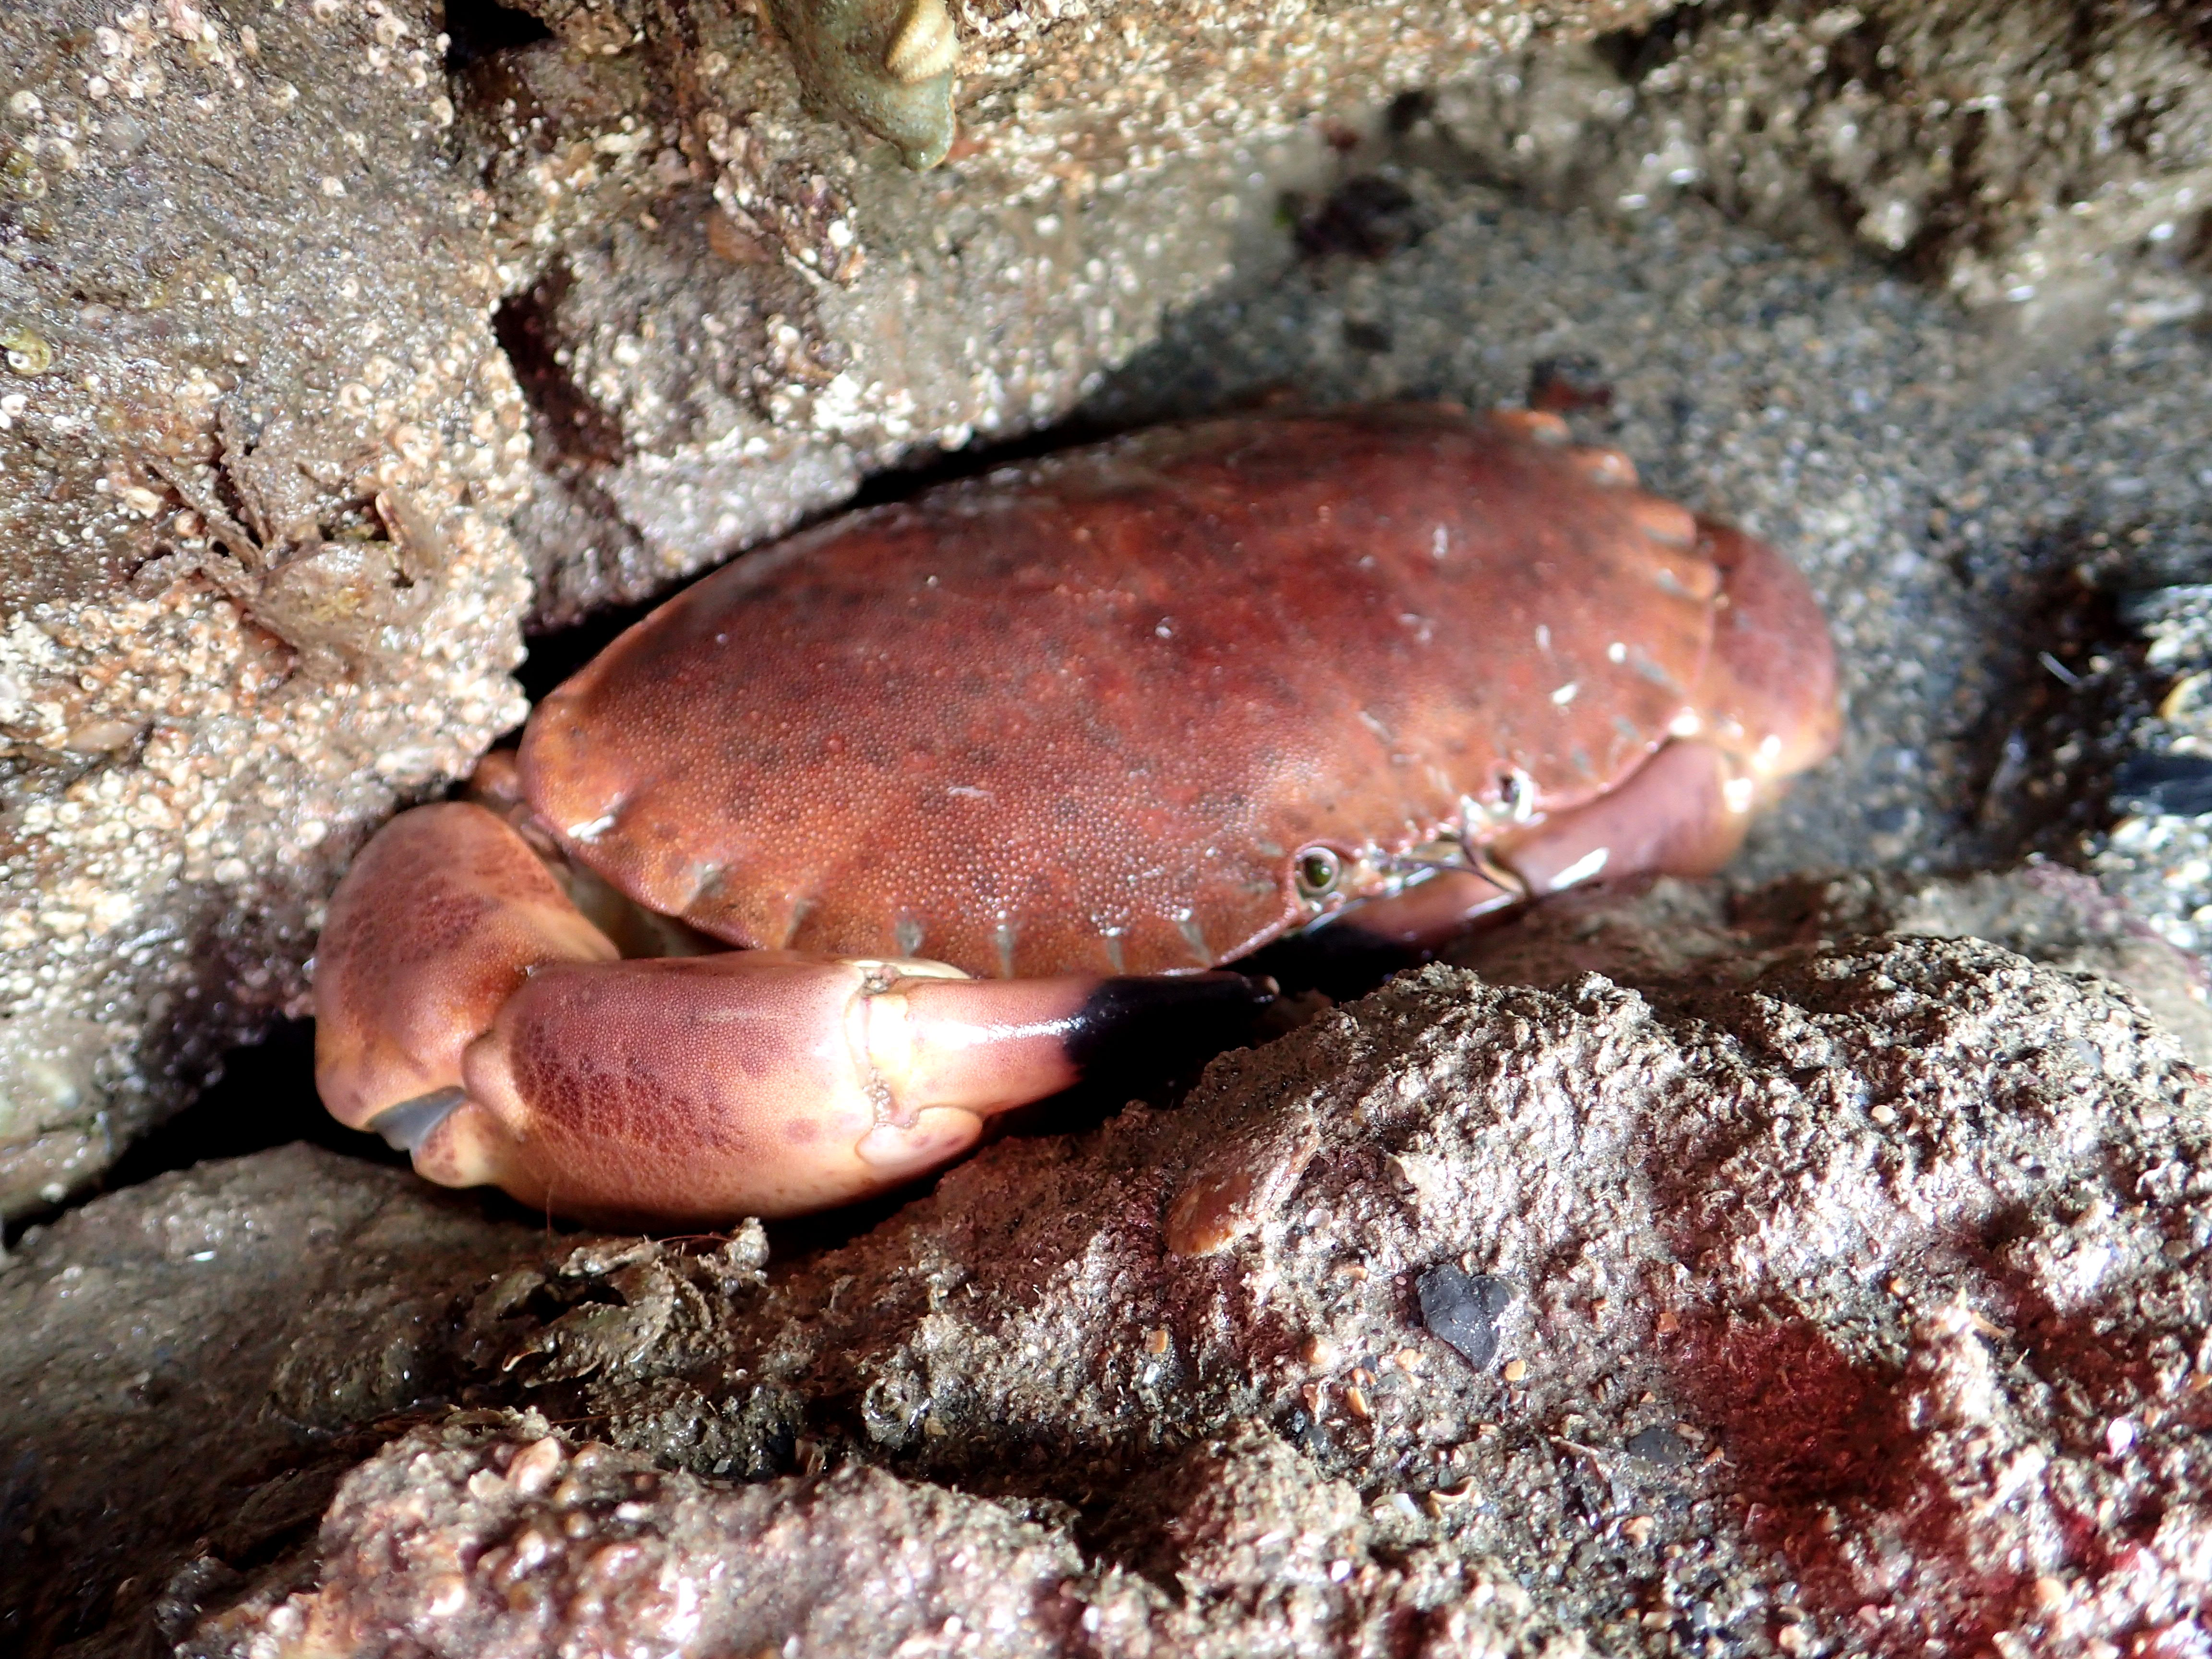 A large edible crab in a crevice.